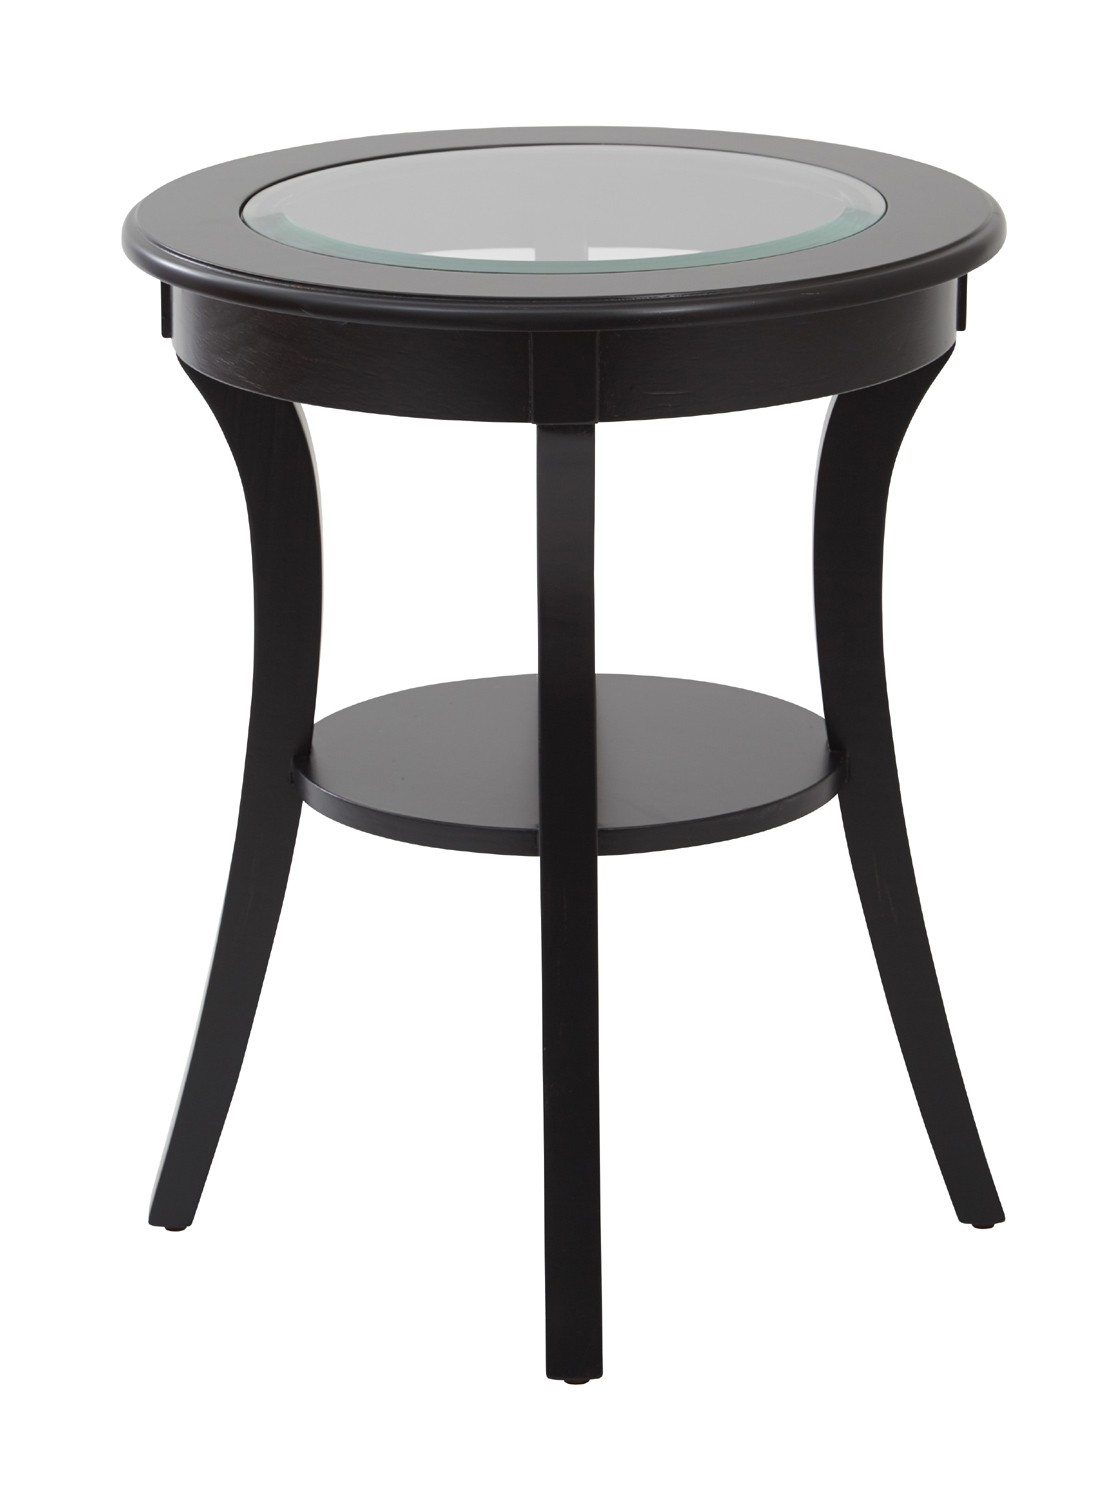 lovely black round accent table with kitchen gorgeous uttermost stylish office star harper glass top brushed tures gallery agacio and fall tablecloth mid century modern dining set